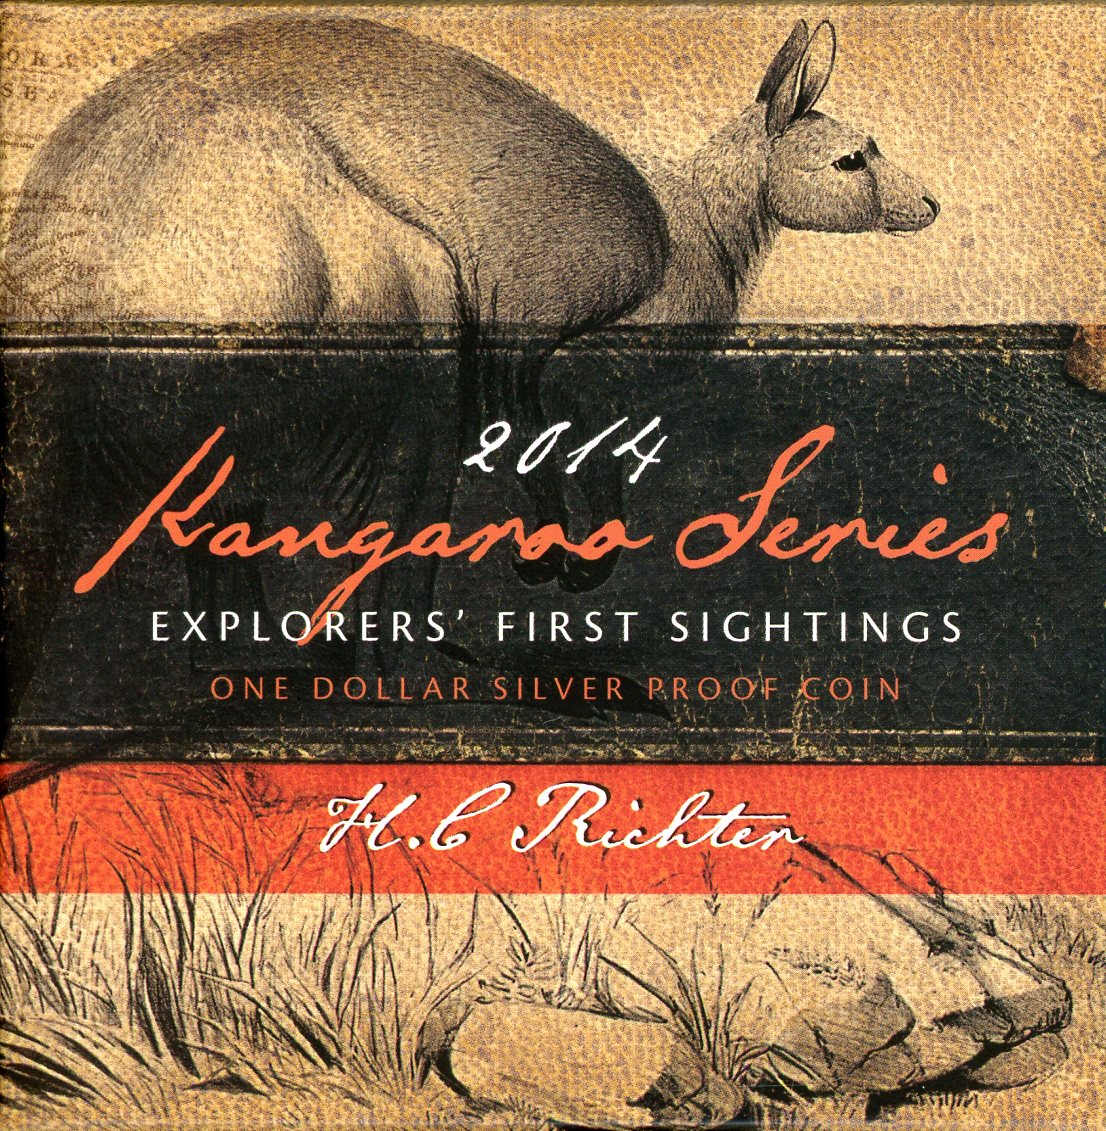 Thumbnail for 2014 Kanga Series Explorer's First Sightings $1 Silver Proof Coin